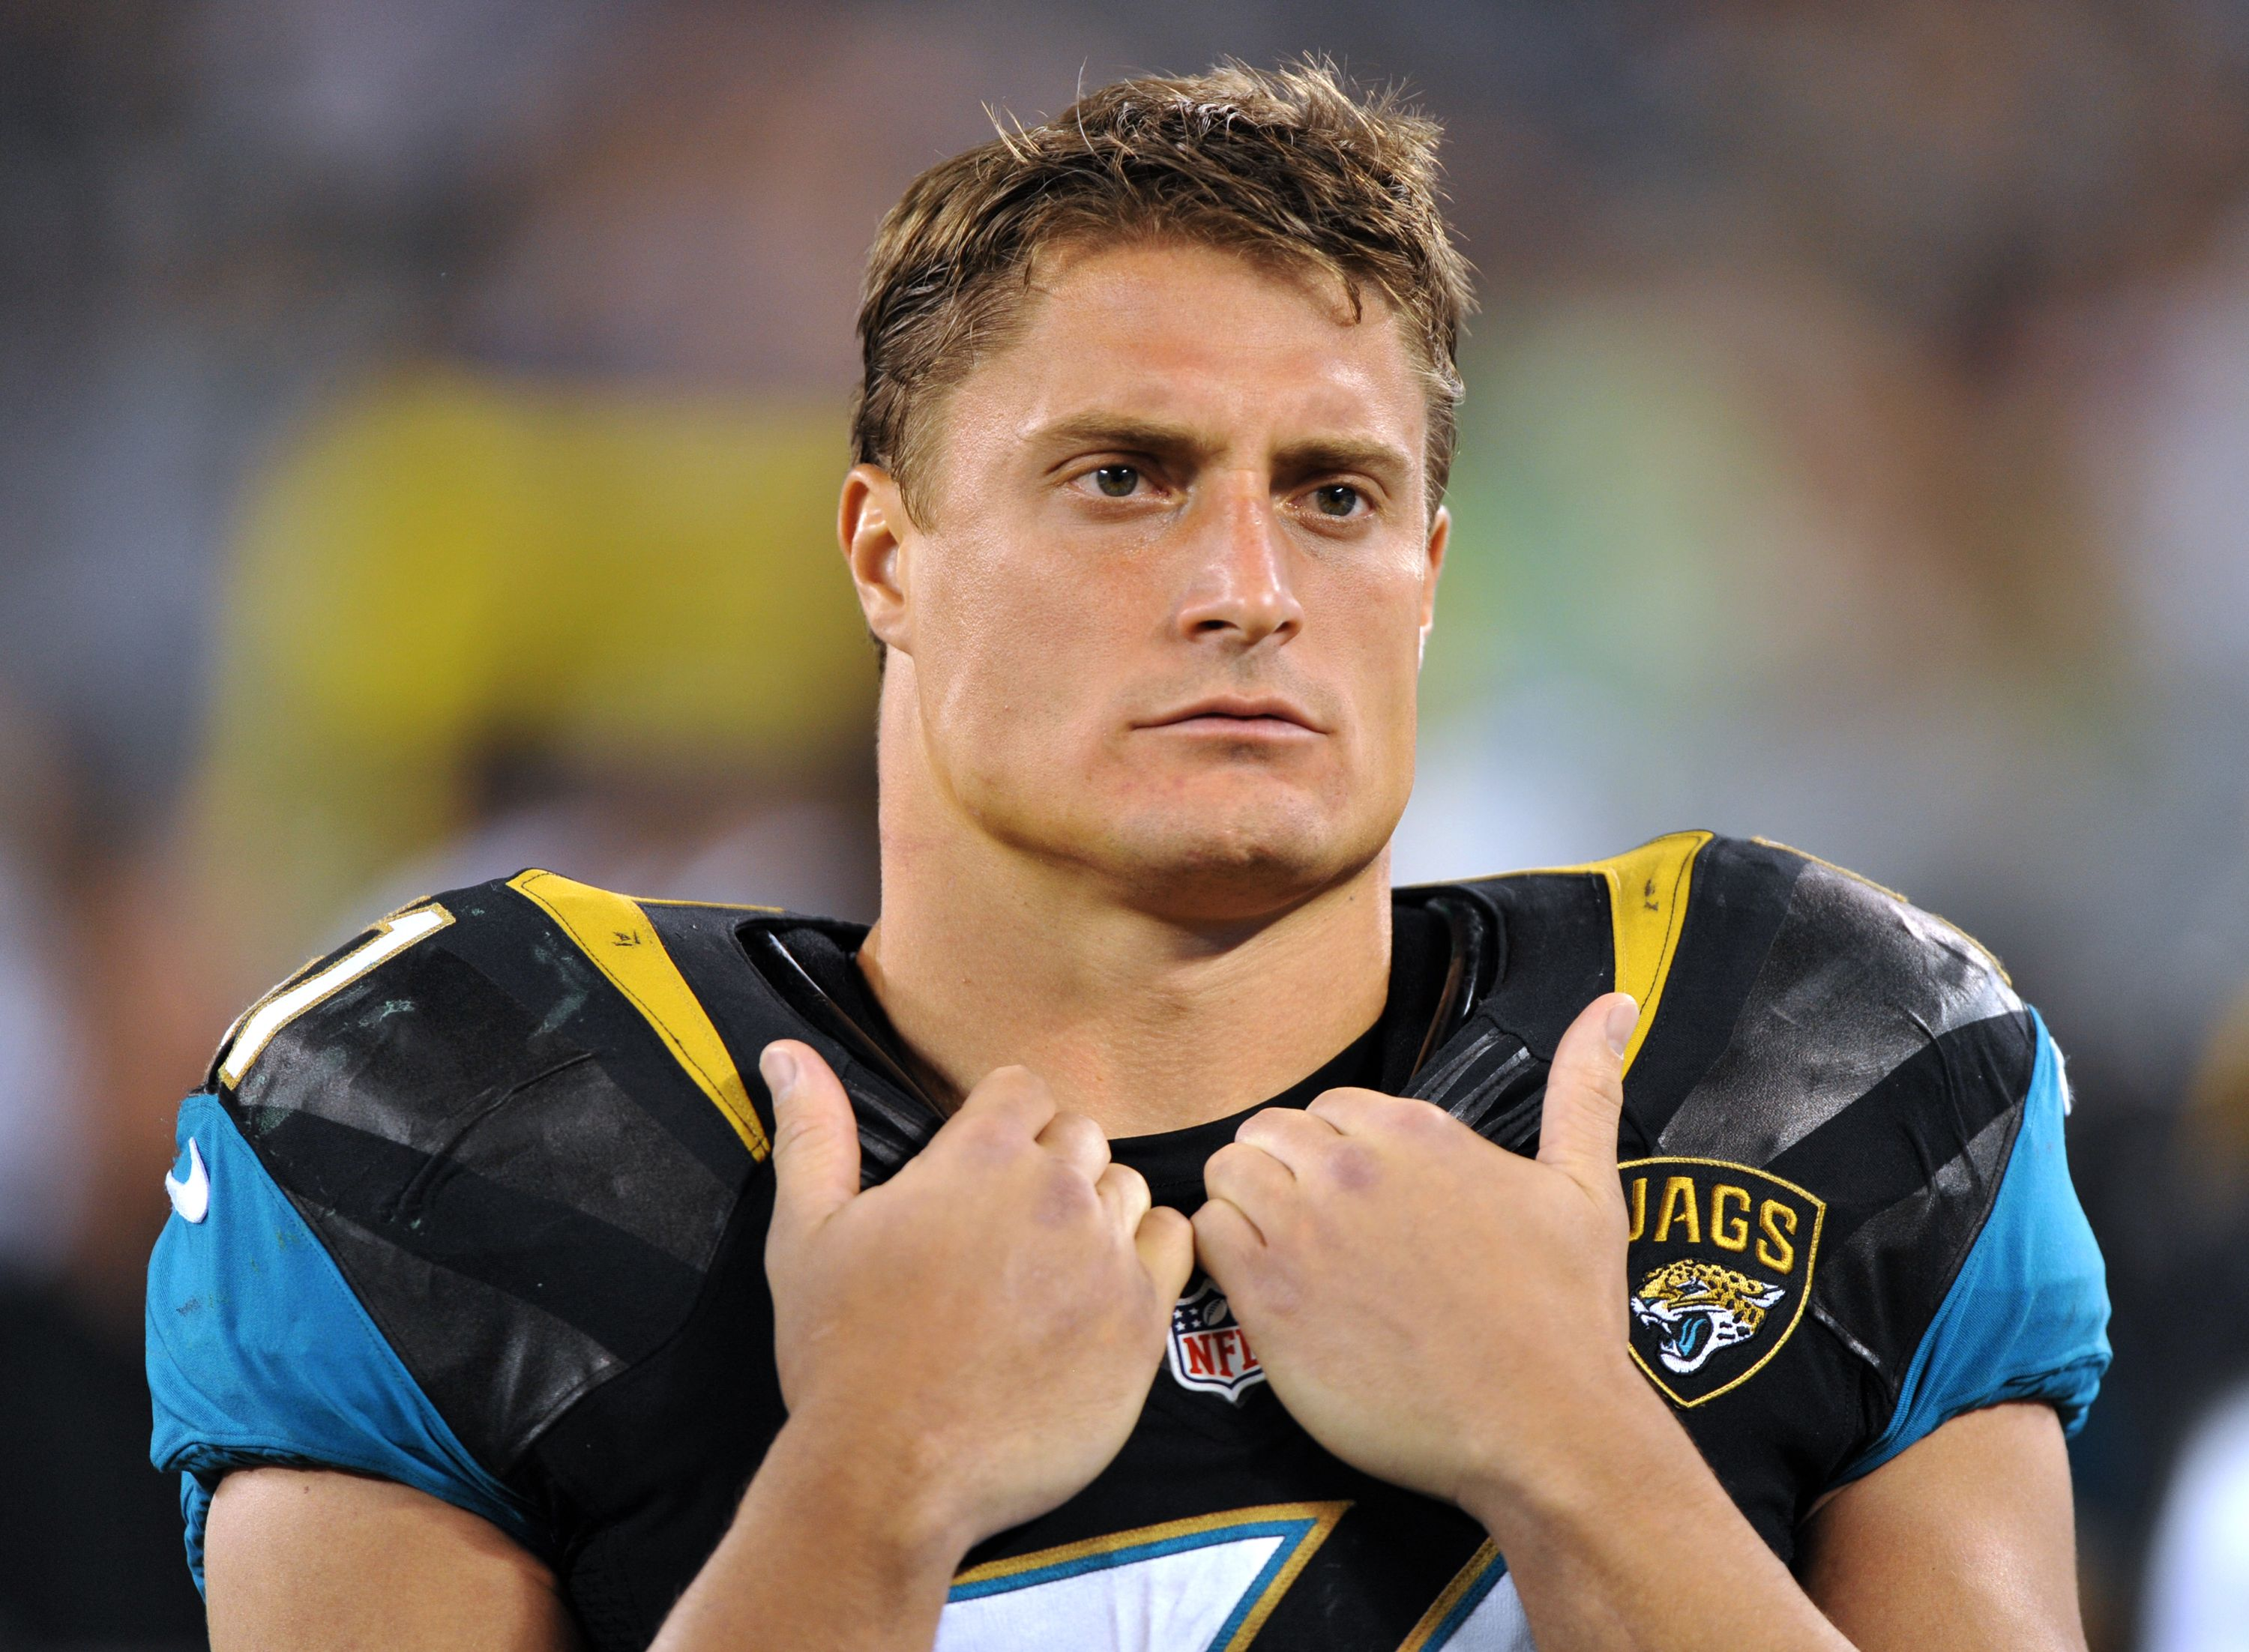 83de704ff Jacksonville Jaguars linebacker  51 Paul Posluszny on the sideline against  the New York Jets during a preseason game Saturday August 17